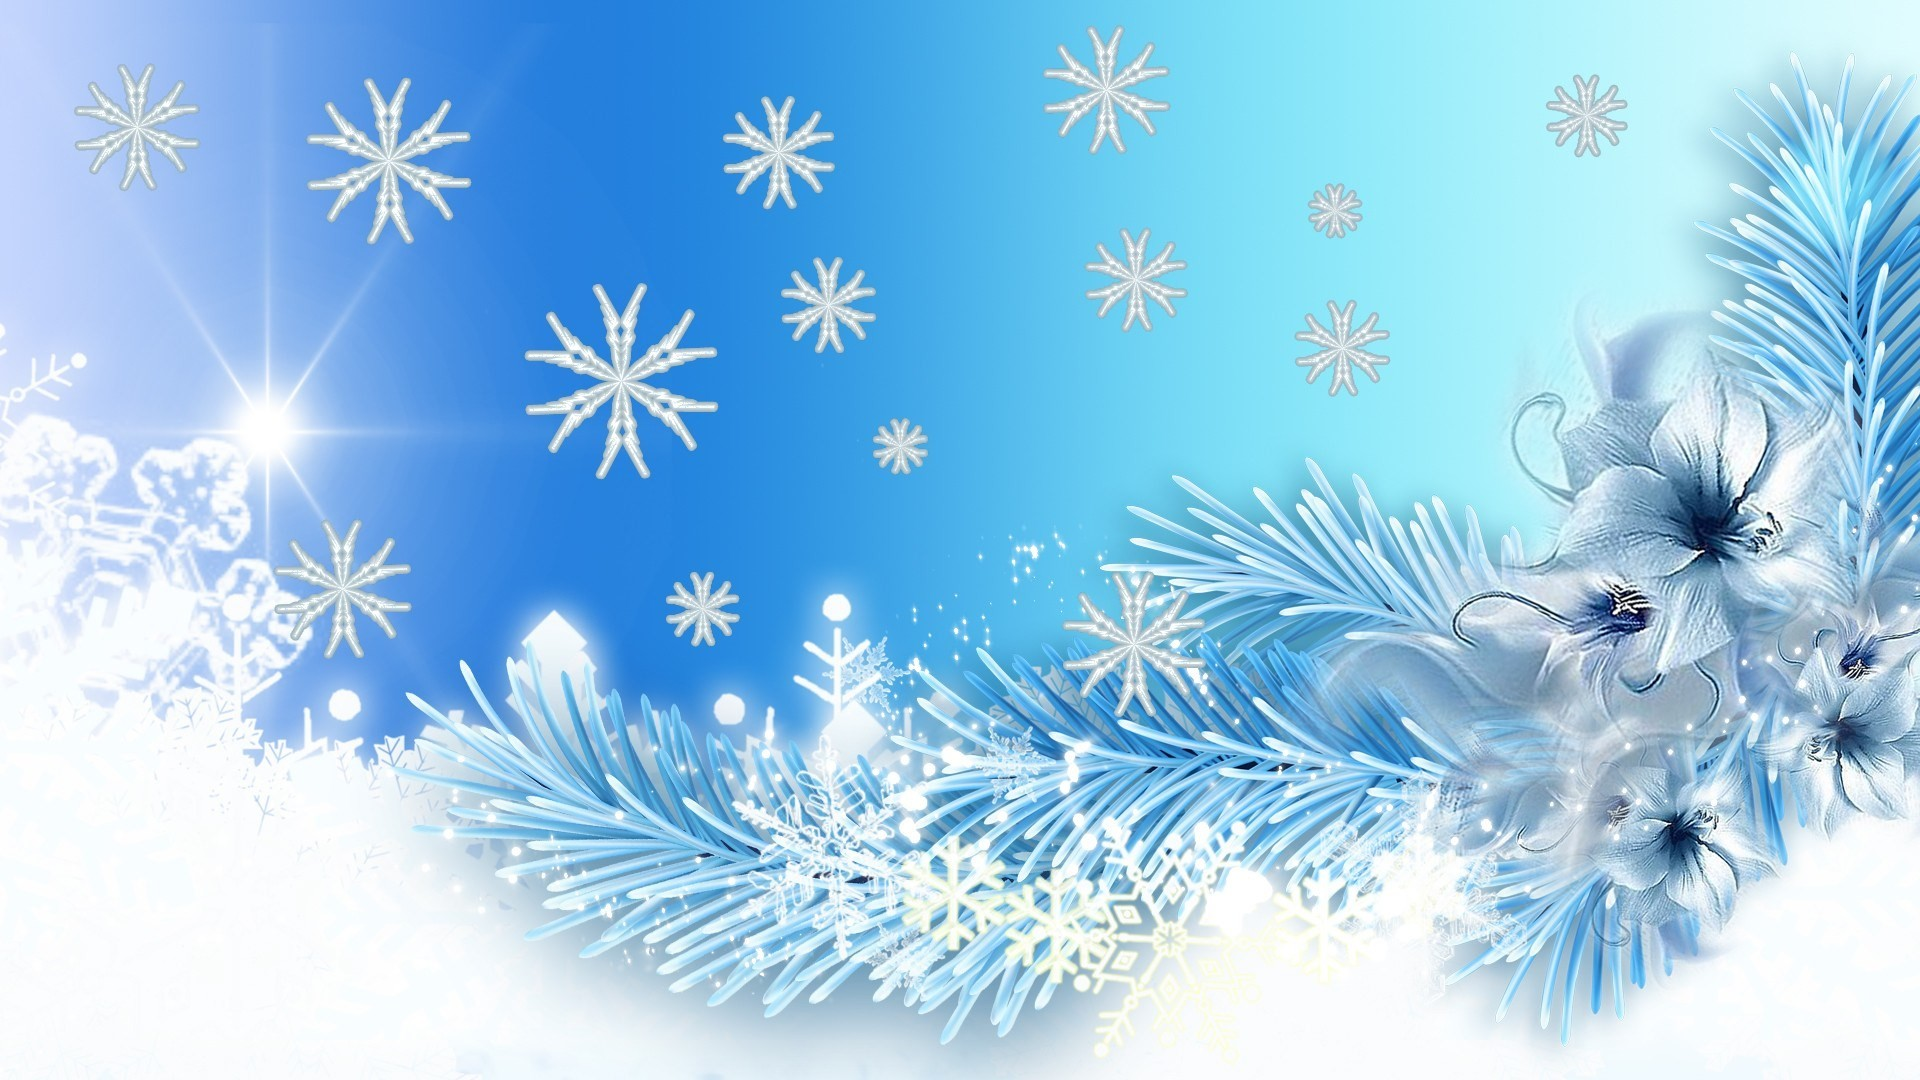 1920x1080 winter theme background images - winter category